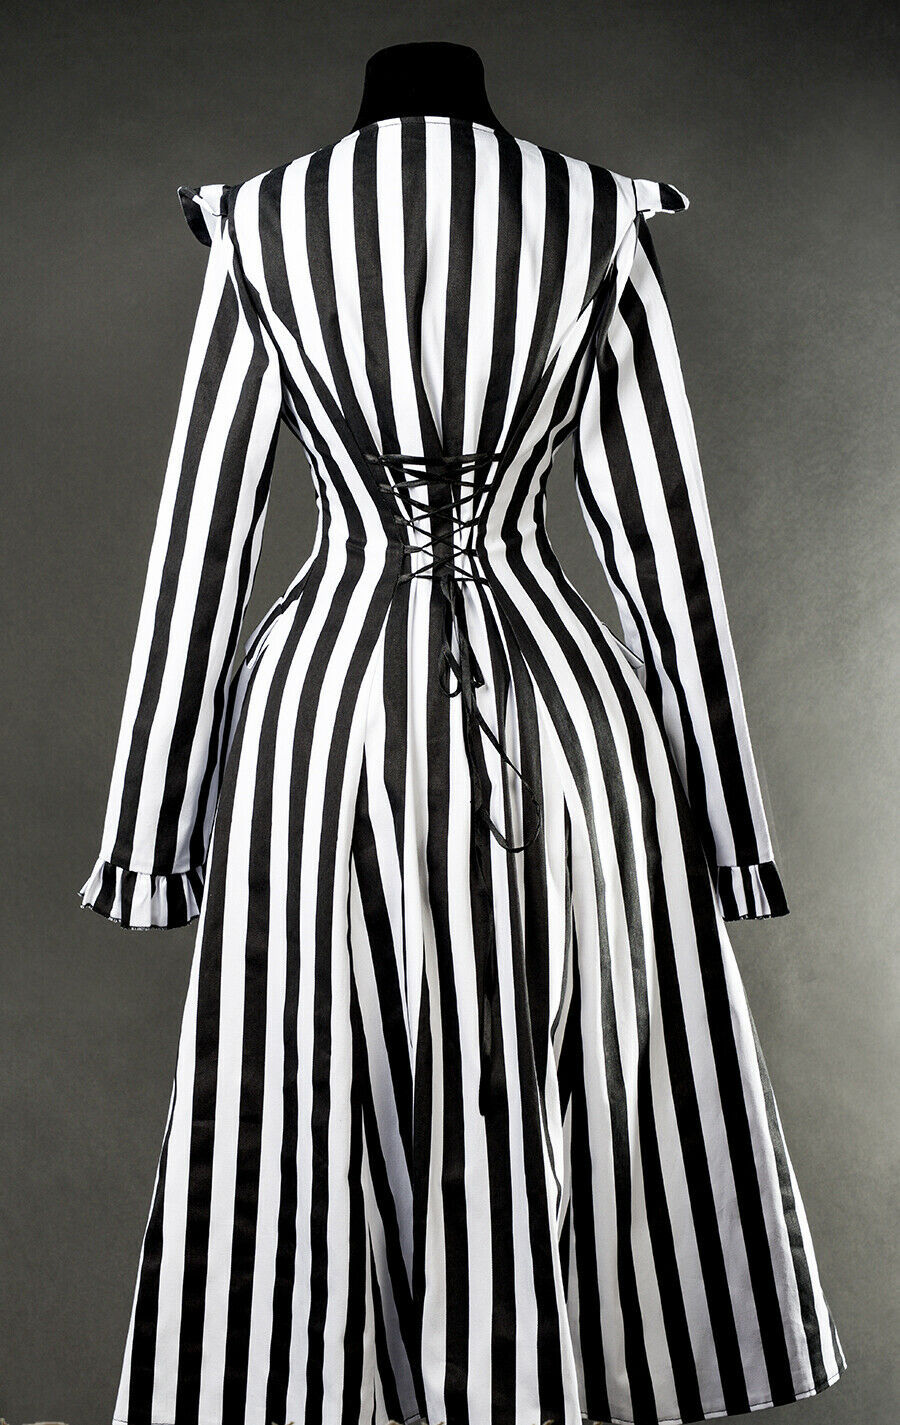 Black White Striped Victorian Gothic Corset Back Jacket Long Beetlejuice Coat